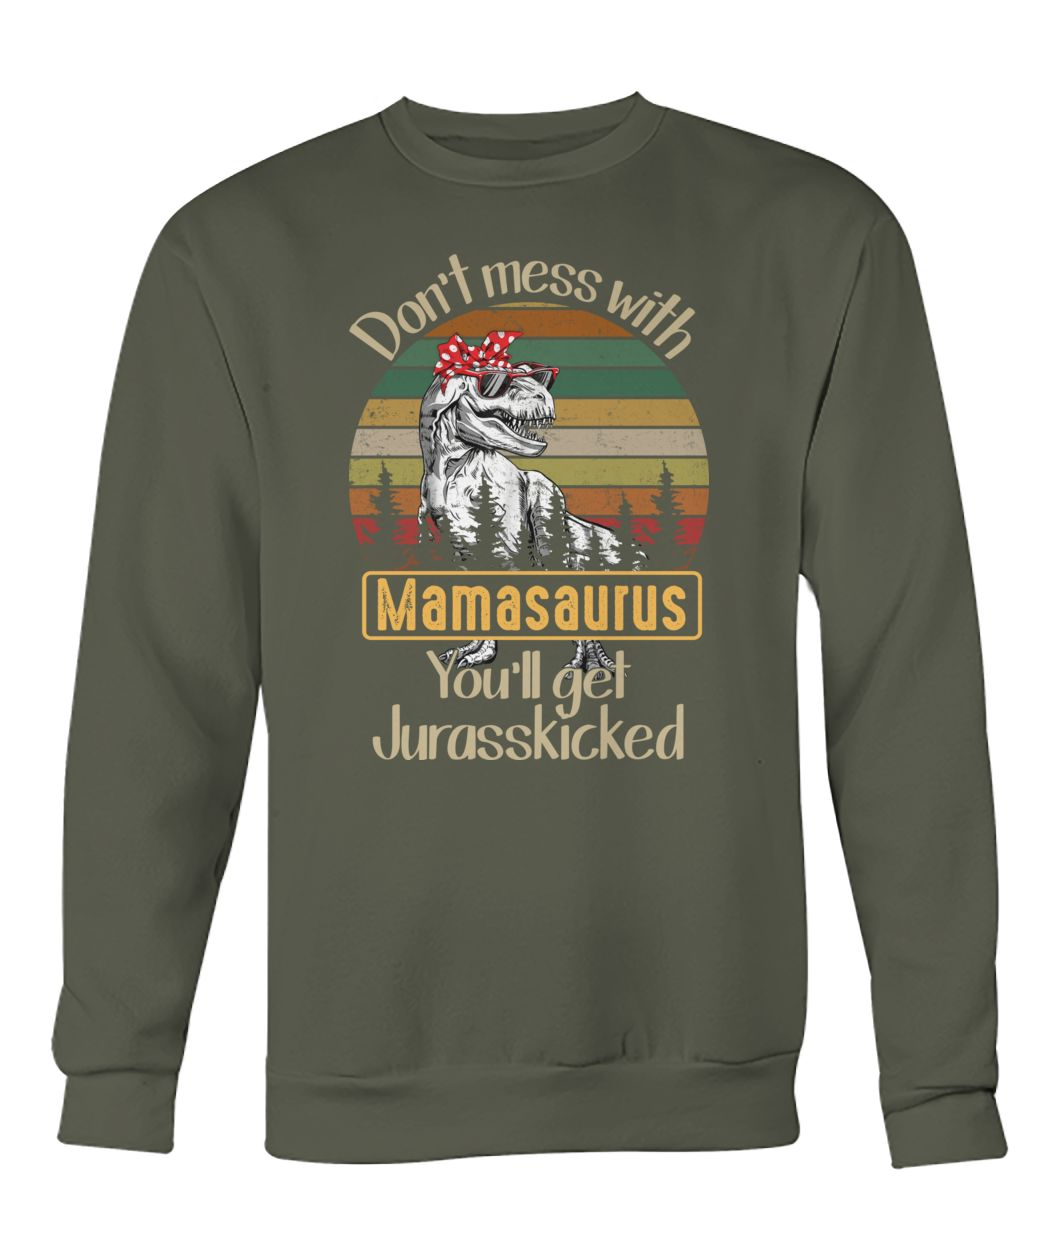 Don't mess with mamasaurus you'll get Jurasskicked crew neck sweatshirt